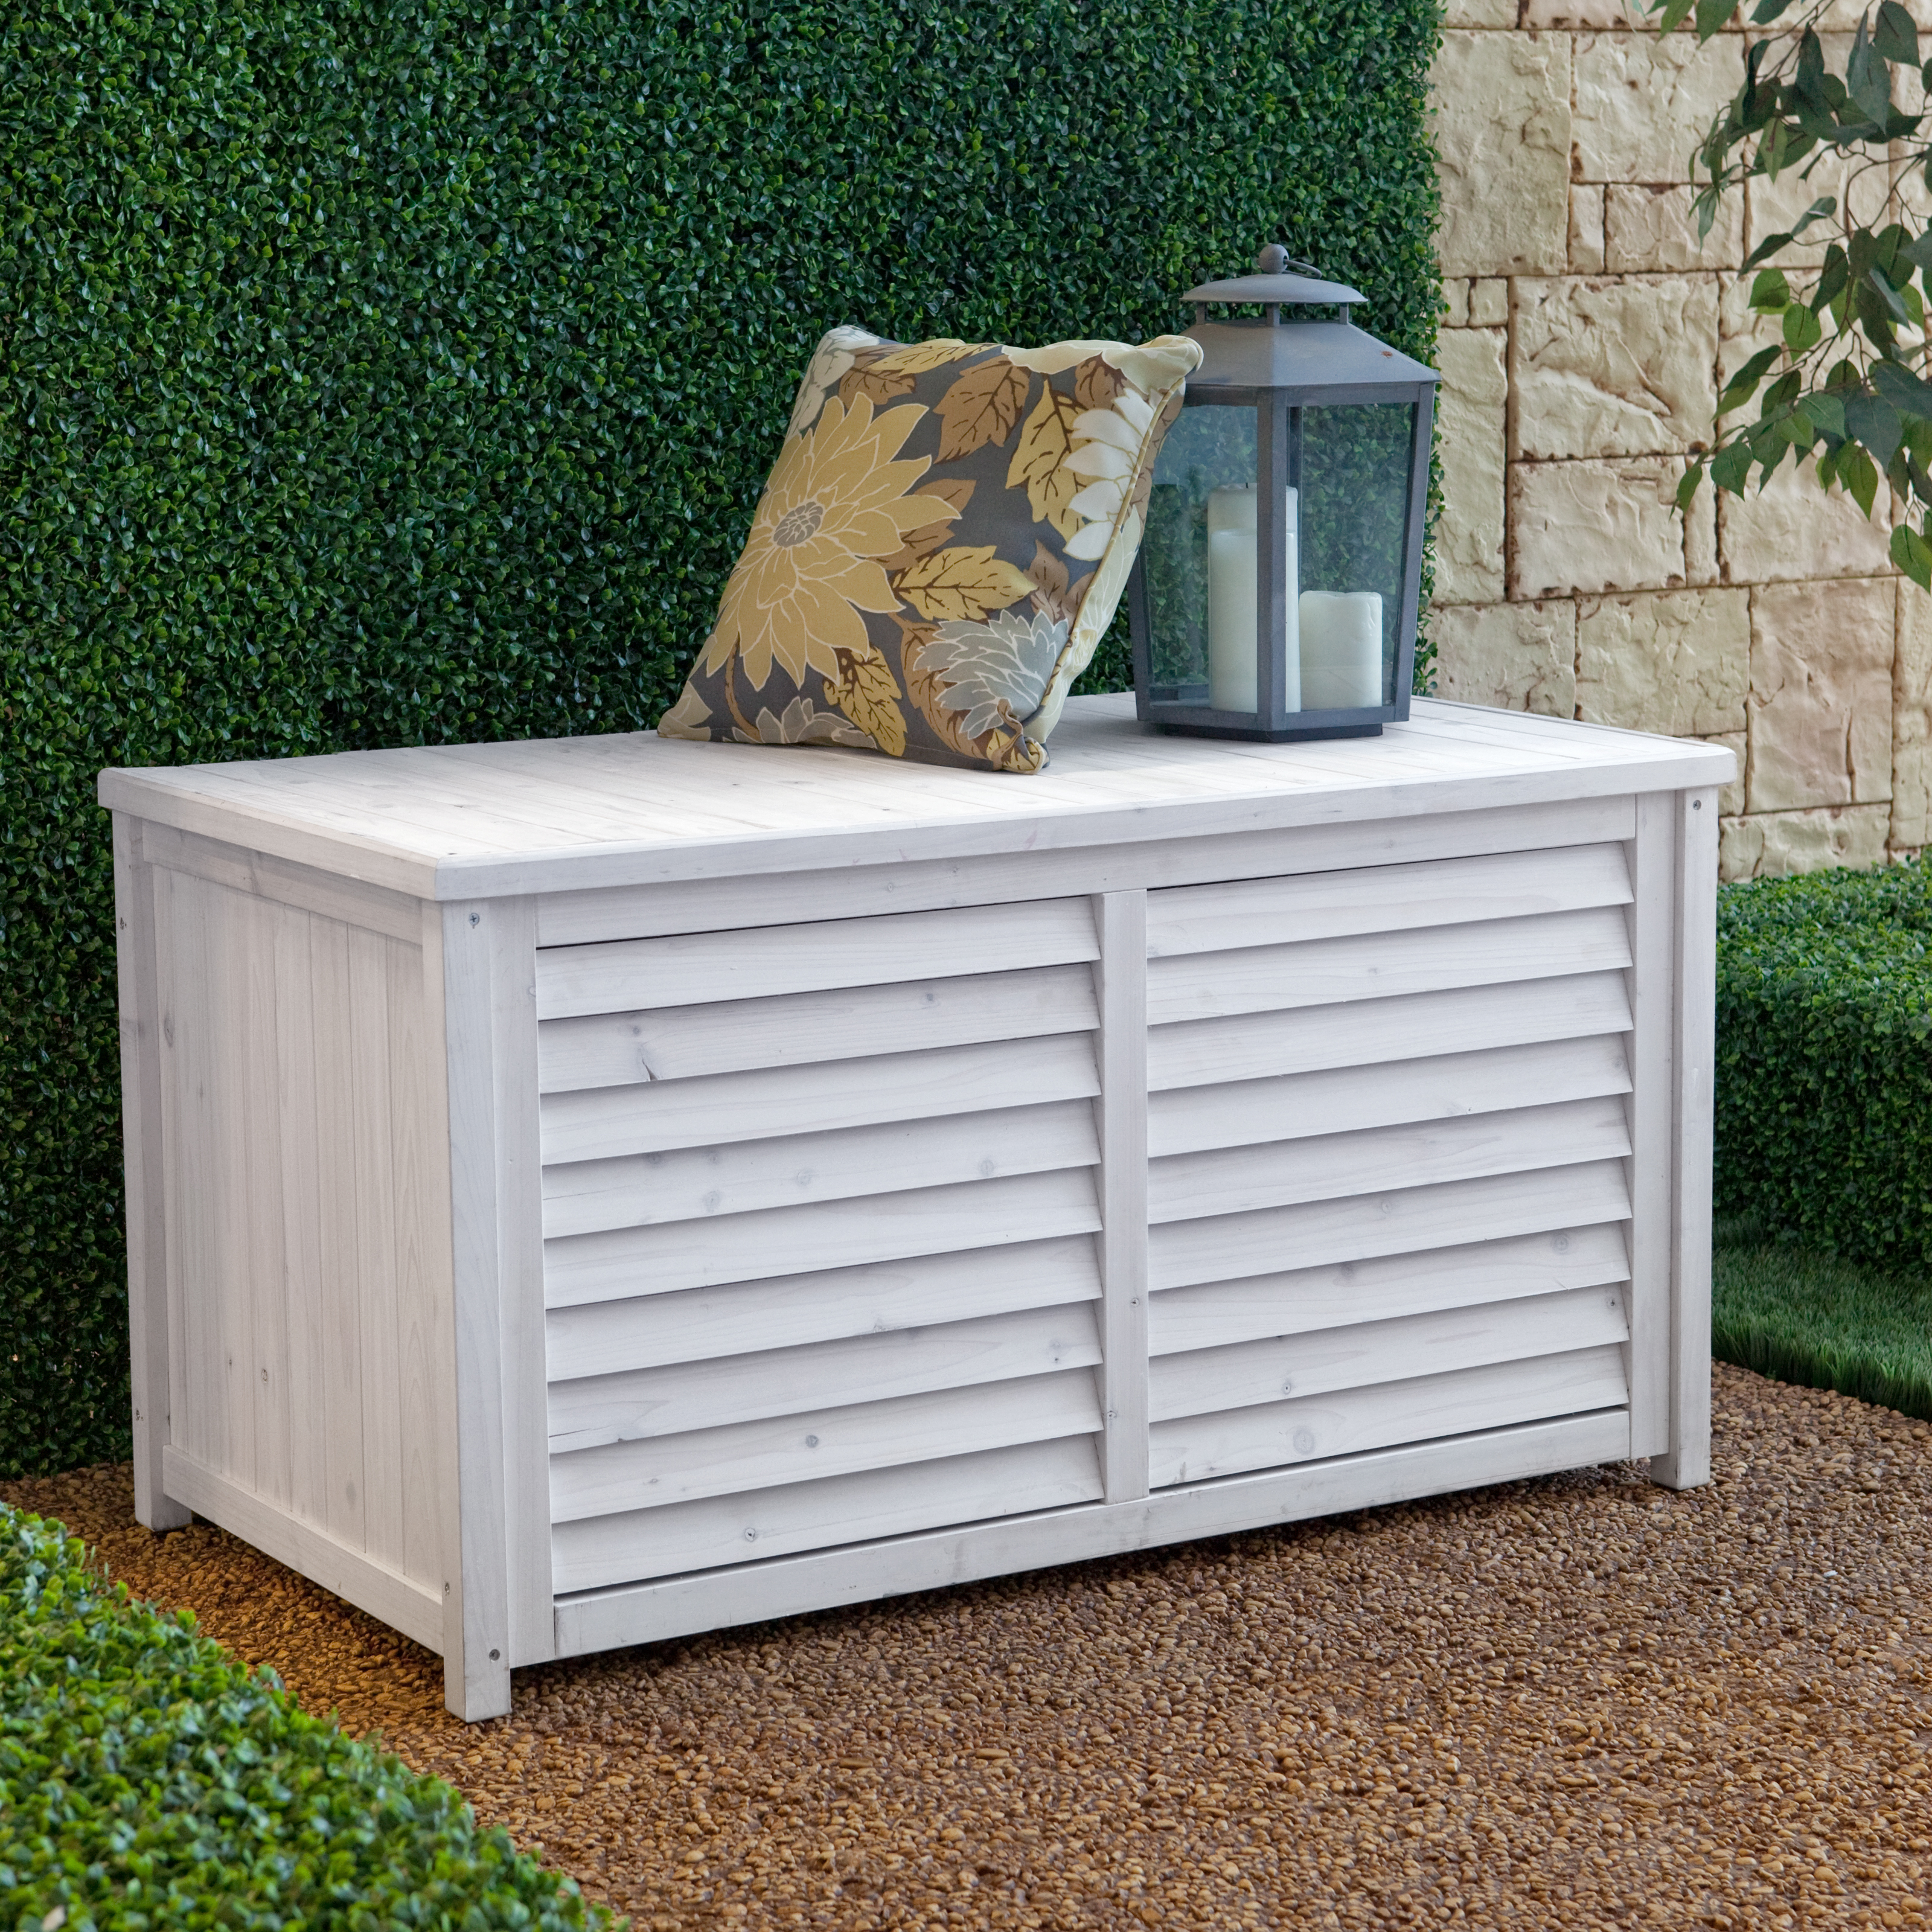 Coral Coast Outdoor Wood Deck Box White Wash Outdoor